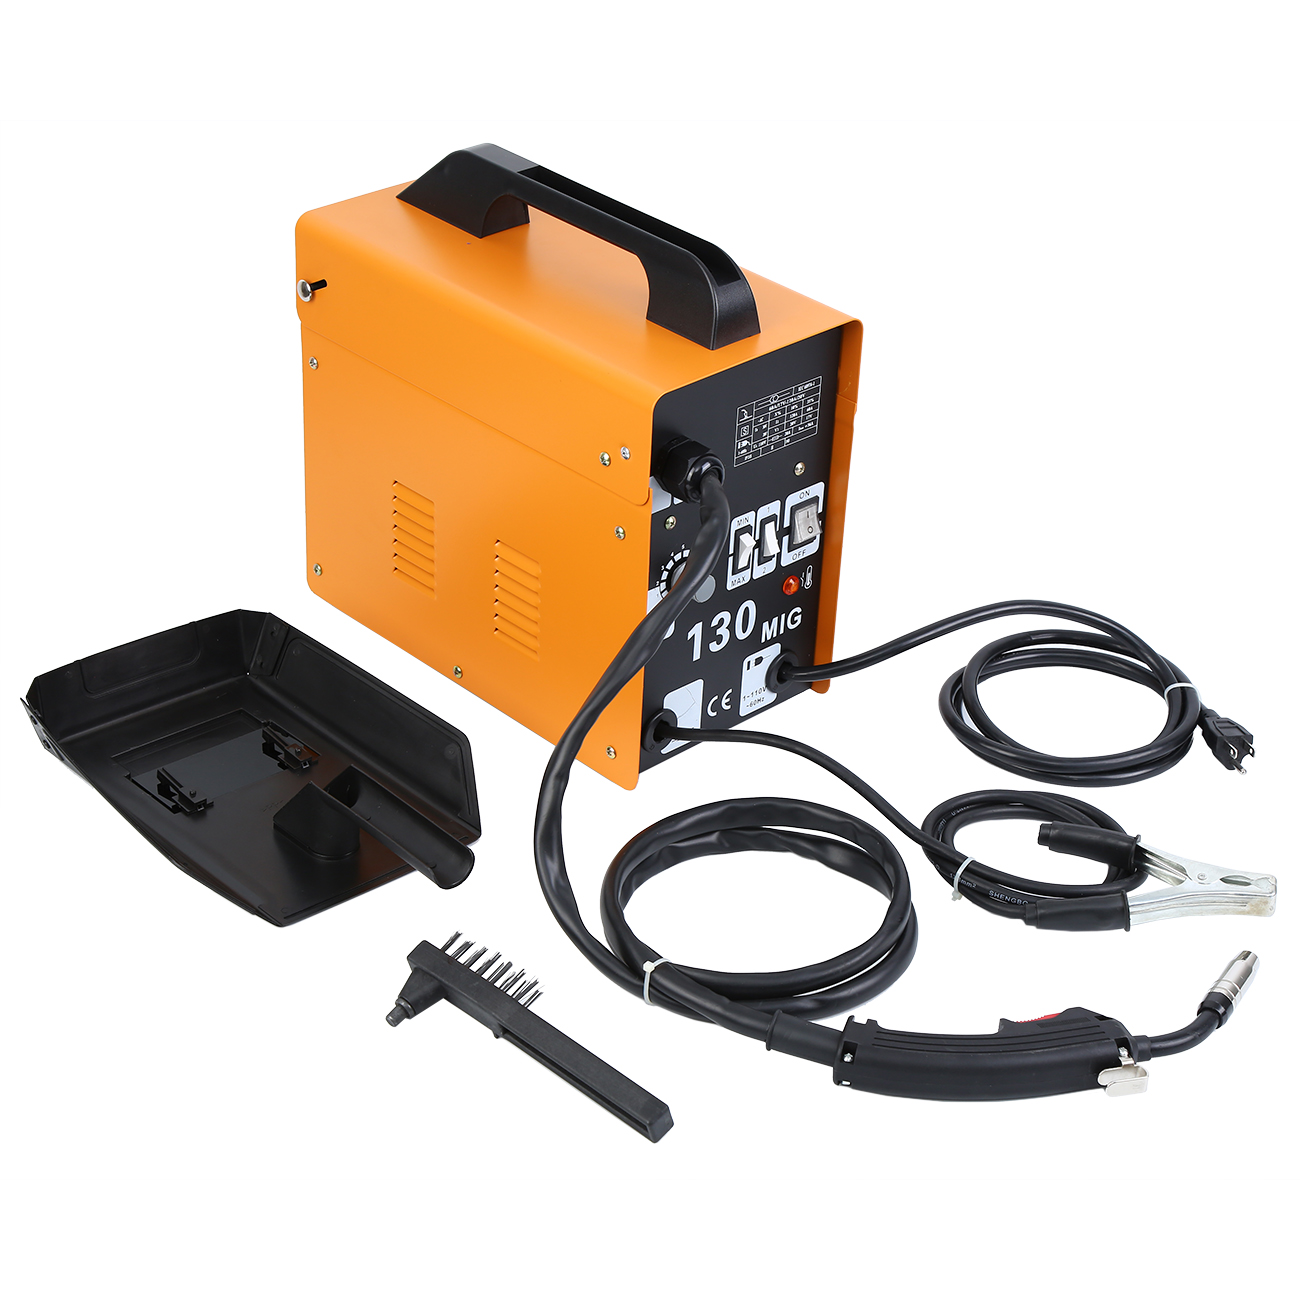 Yonntech MIG 130 Flux-cored Wire Automatic Feeder Welding Machine With Free Mask